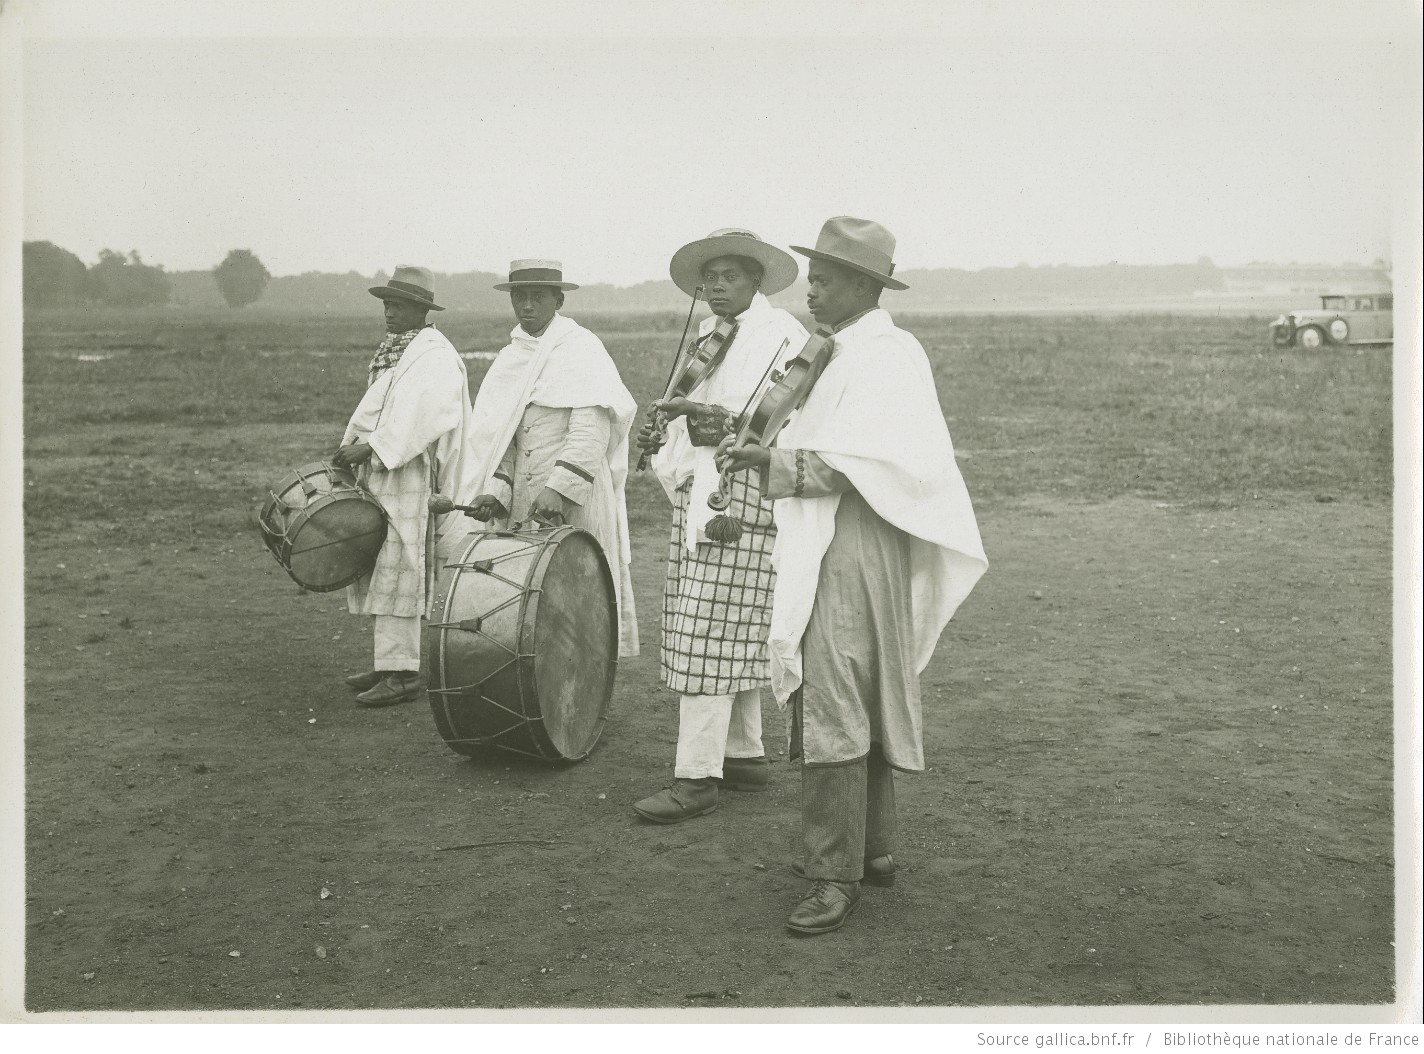 Madagascar 1931 via National Library of France